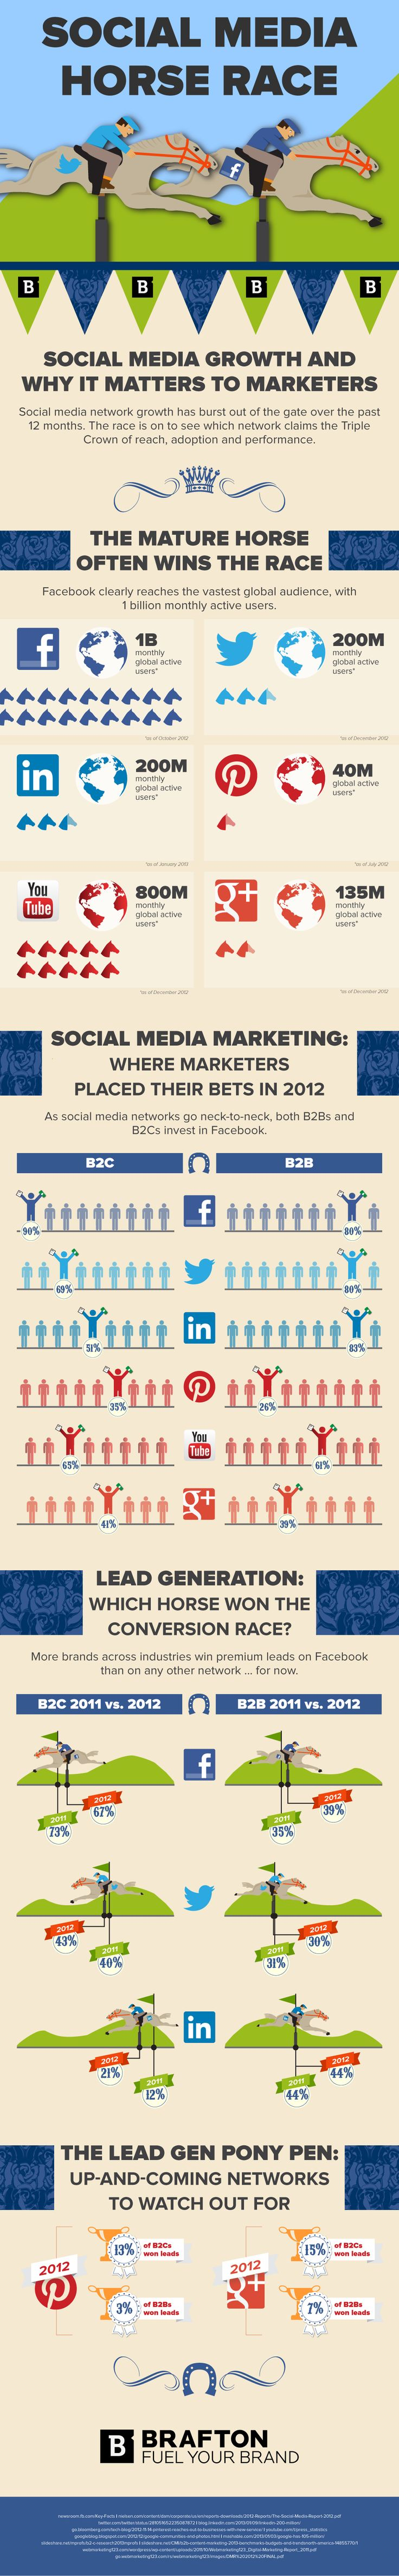 The Growth Of Social Media And Why It Matters To Marketers [INFOGRAPHIC]